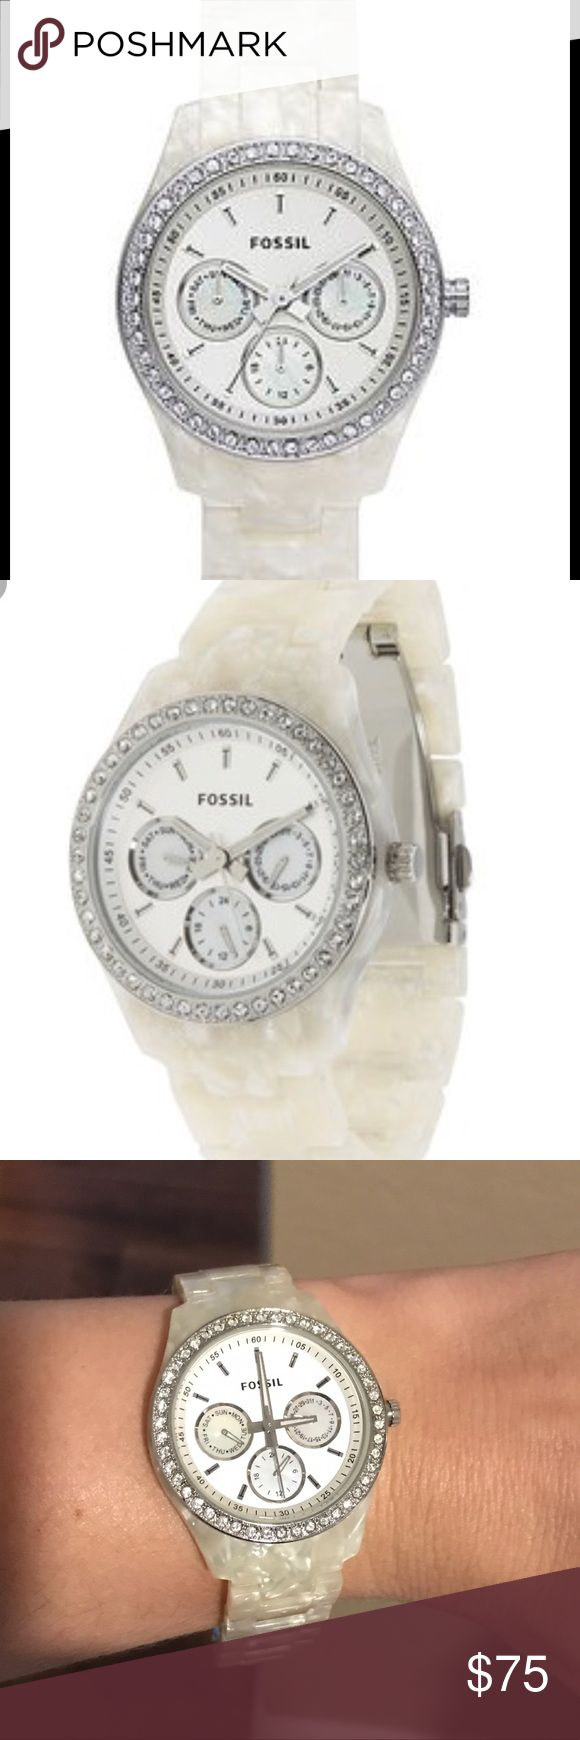 Women's fossil watch with pearl band Fossil- Stella mother of pearl (white) with glittering crystal accents around the face of the watch Fossil Accessories Watches